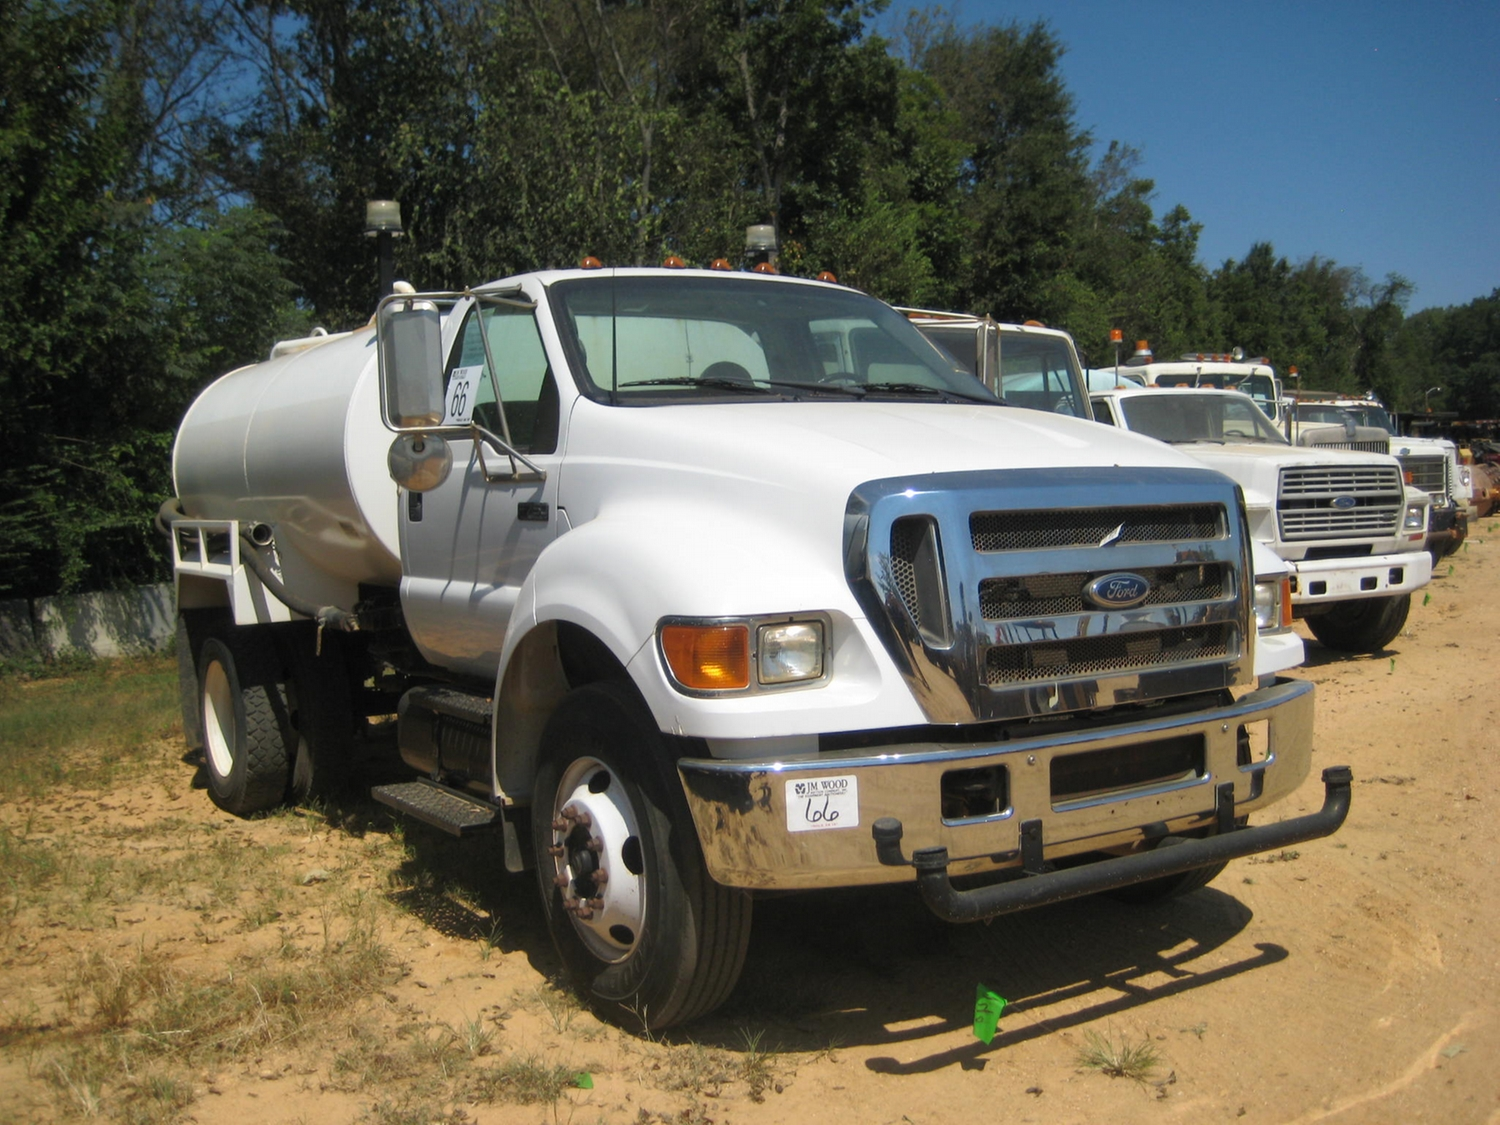 medium resolution of  image 2 2005 ford f750 super duty s a water truck